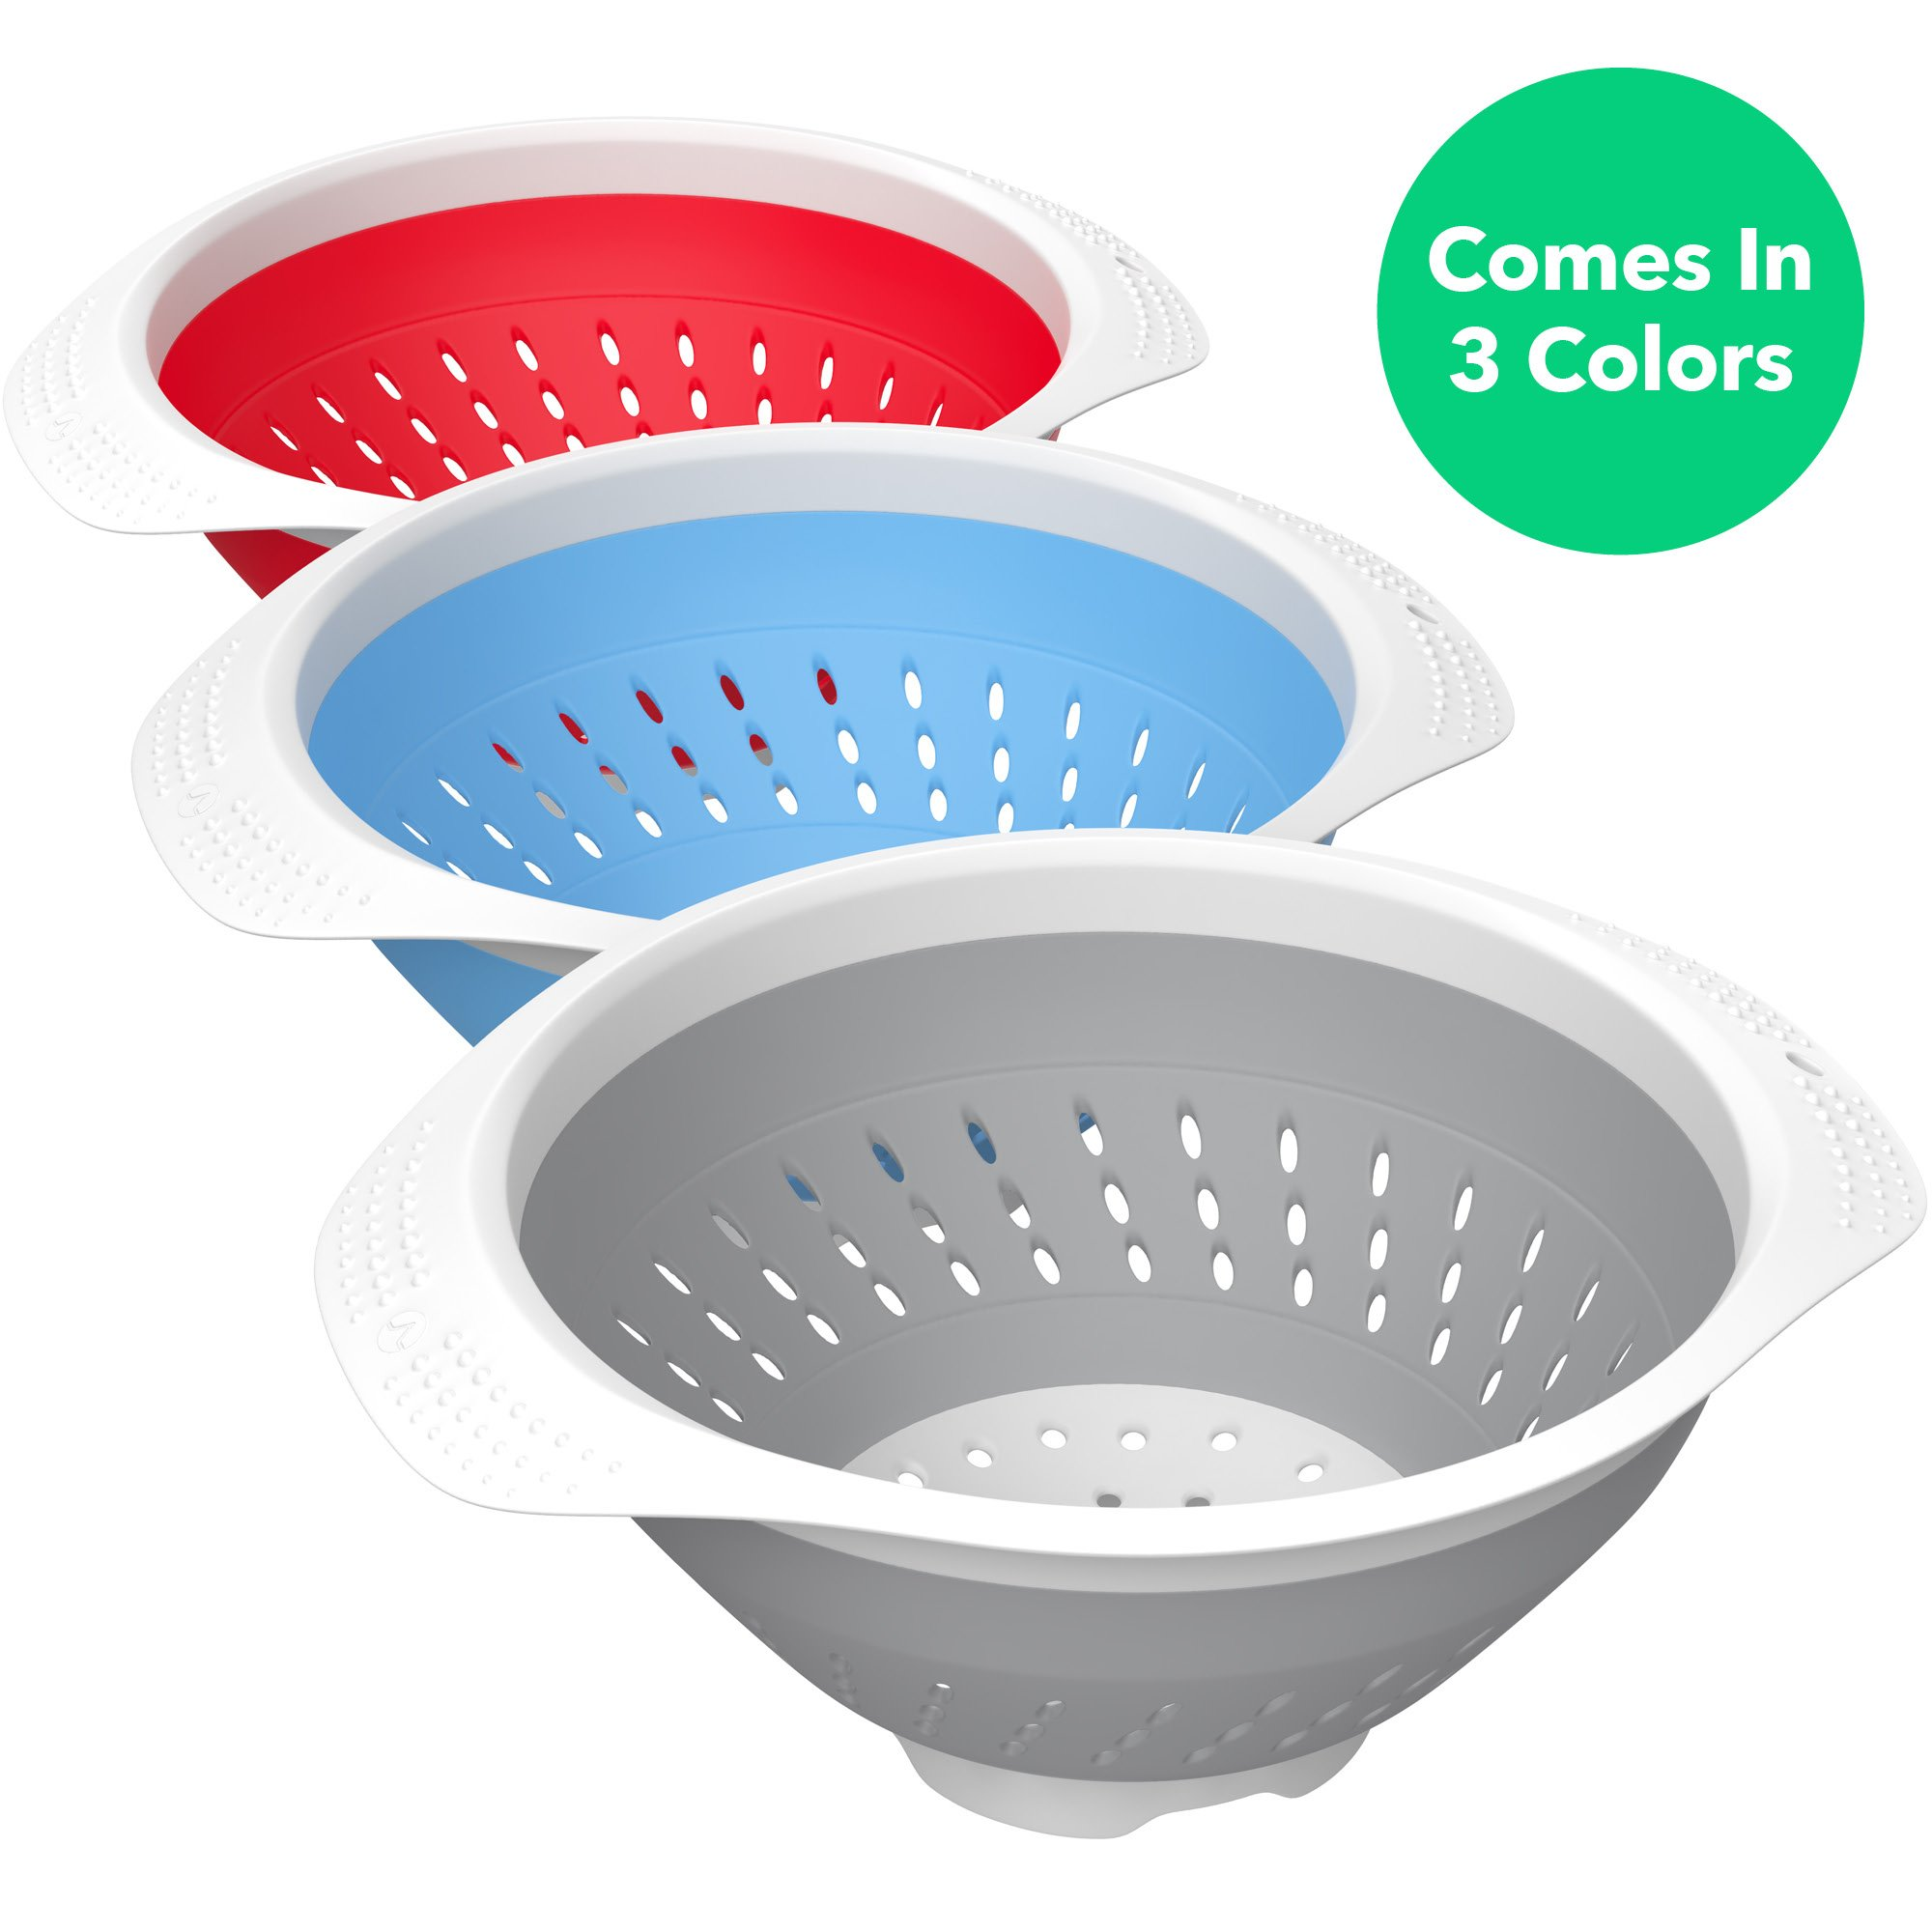 Vremi 5 Quart Collapsible Colander - BPA Free Silicone Food Strainer with Plastic Handles - Heavy Duty Foldable Heat Resistant Pasta and Veggies Kitchen Drainer Steam Basket - Dishwasher Safe - Gray by Vremi (Image #2)